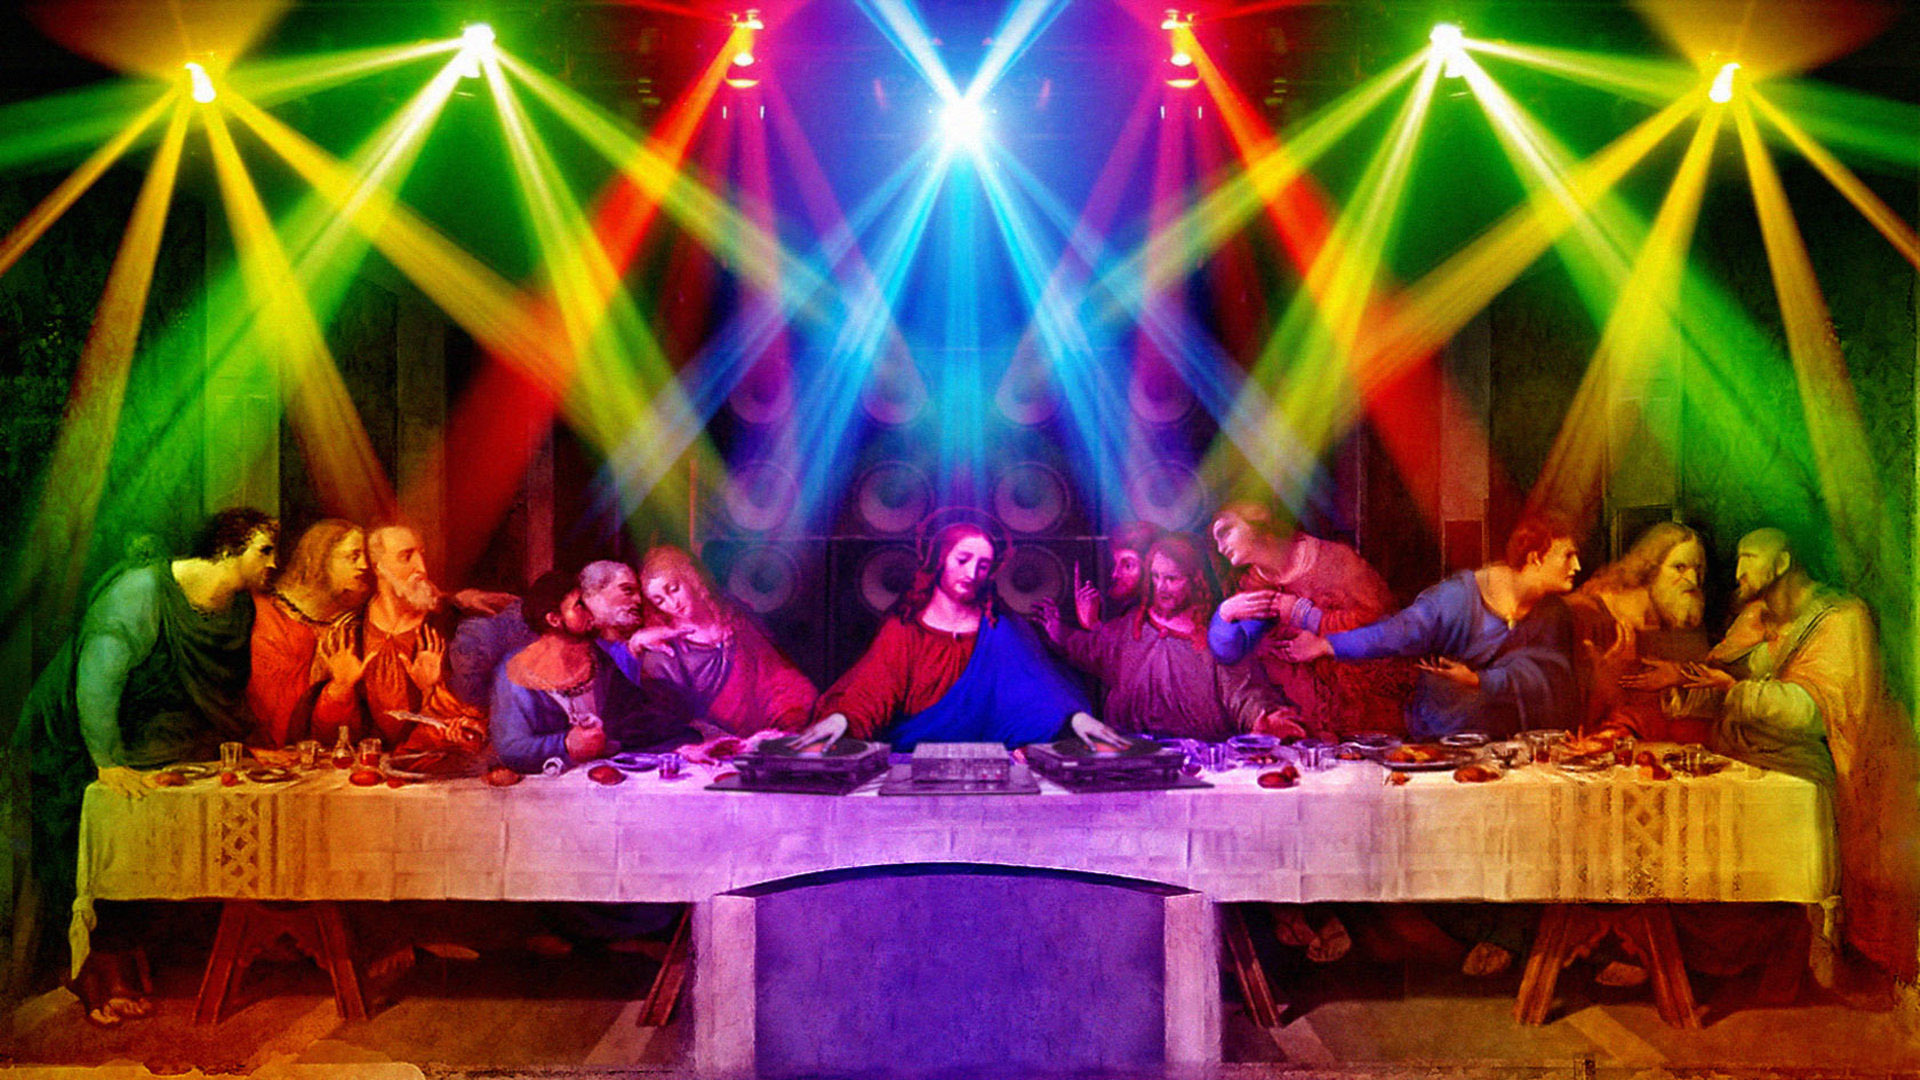 Last supper party wallpaper 14675 1920x1080